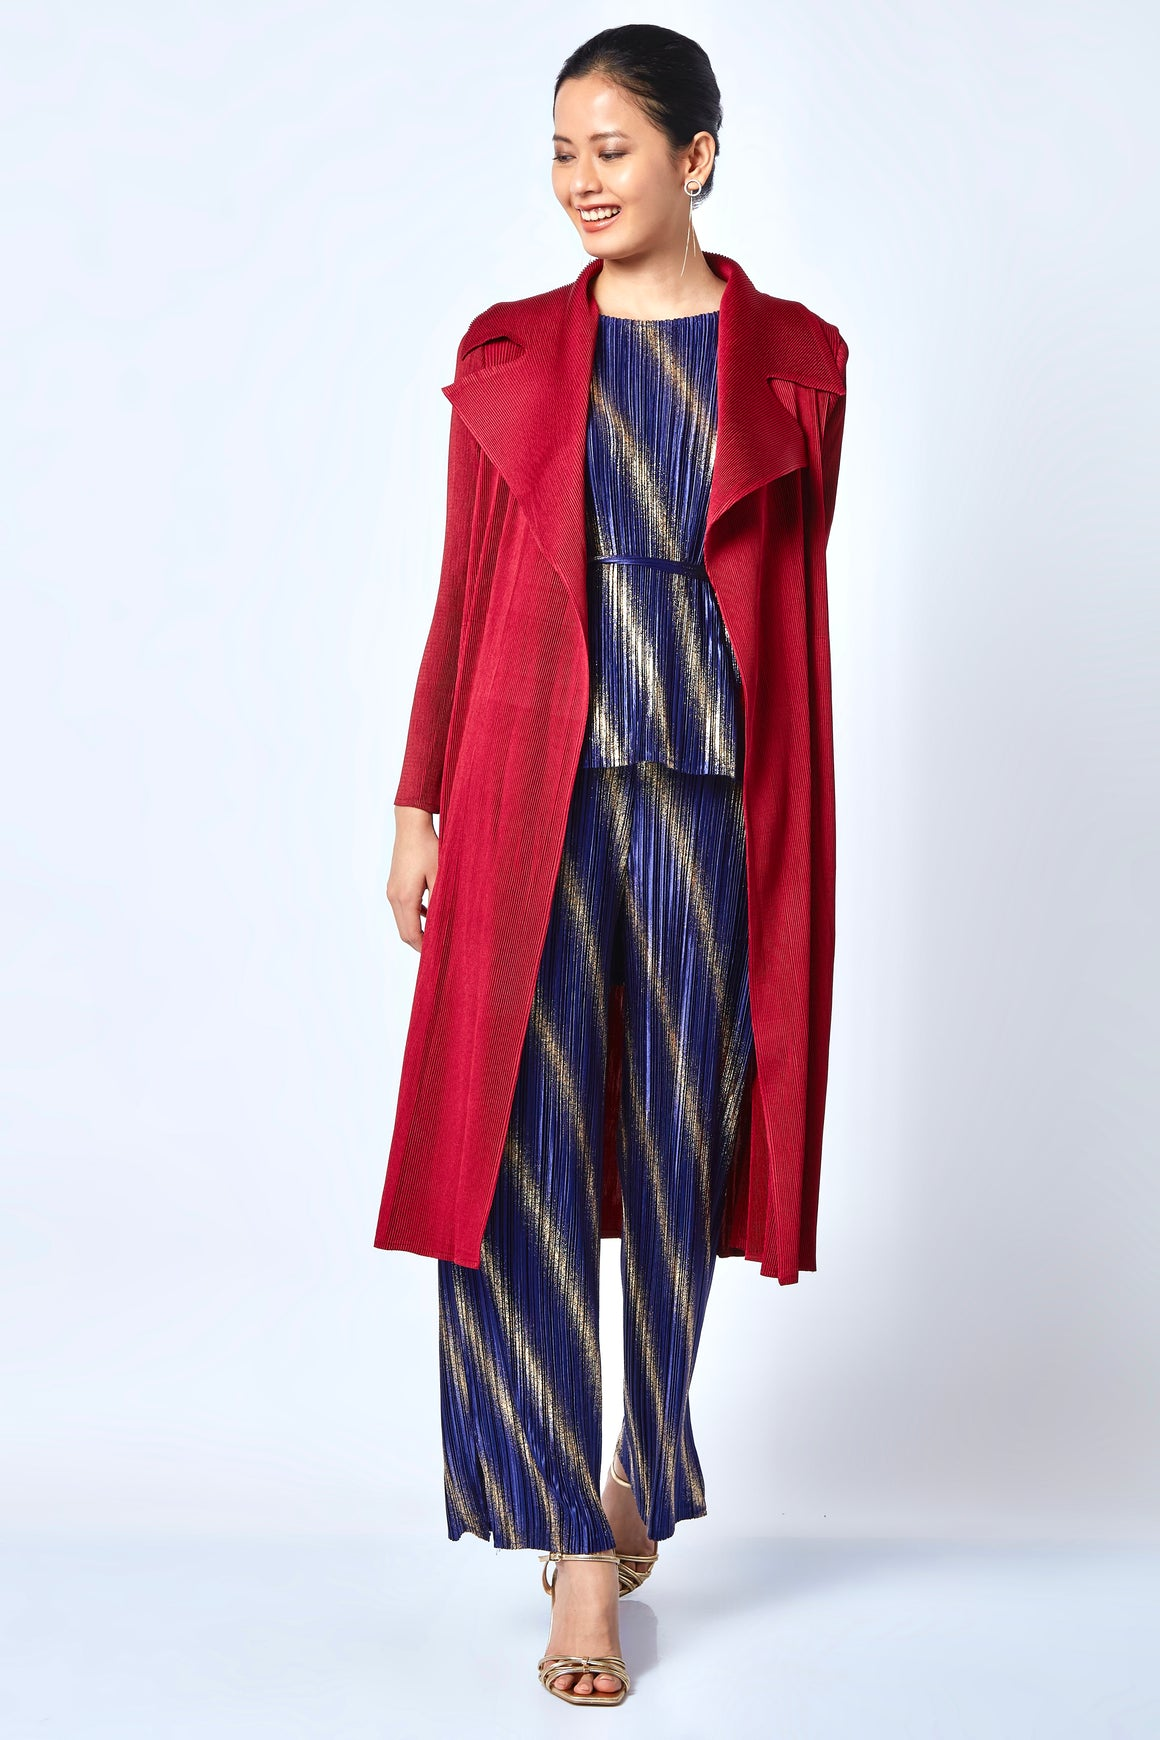 Caroline Wrap Overlay/Dress - Dark Red